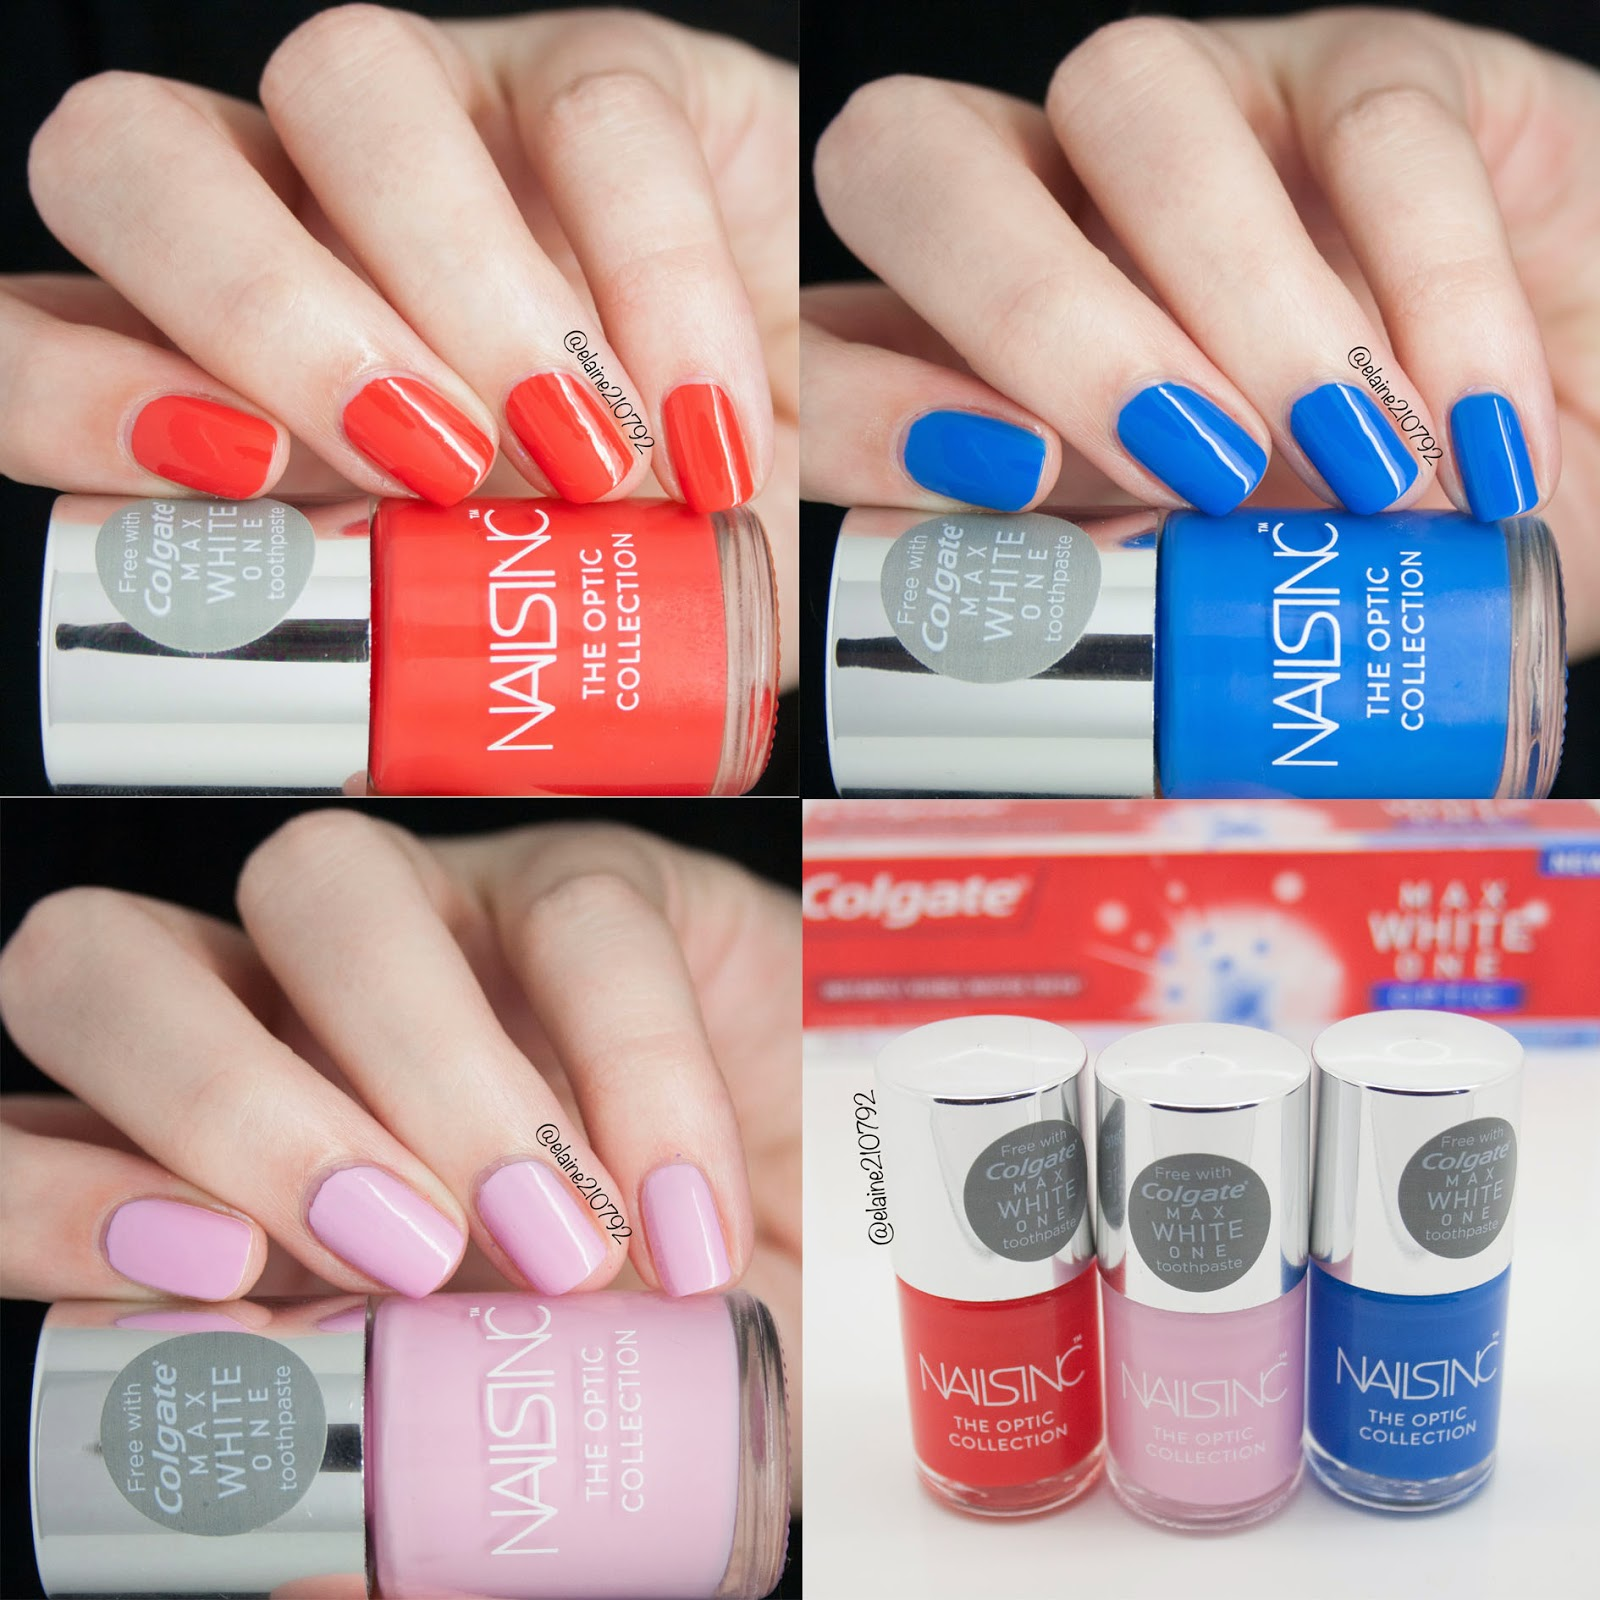 Elaine Nails: Free Nails Inc Nail Polish with Colgate Optic White ...